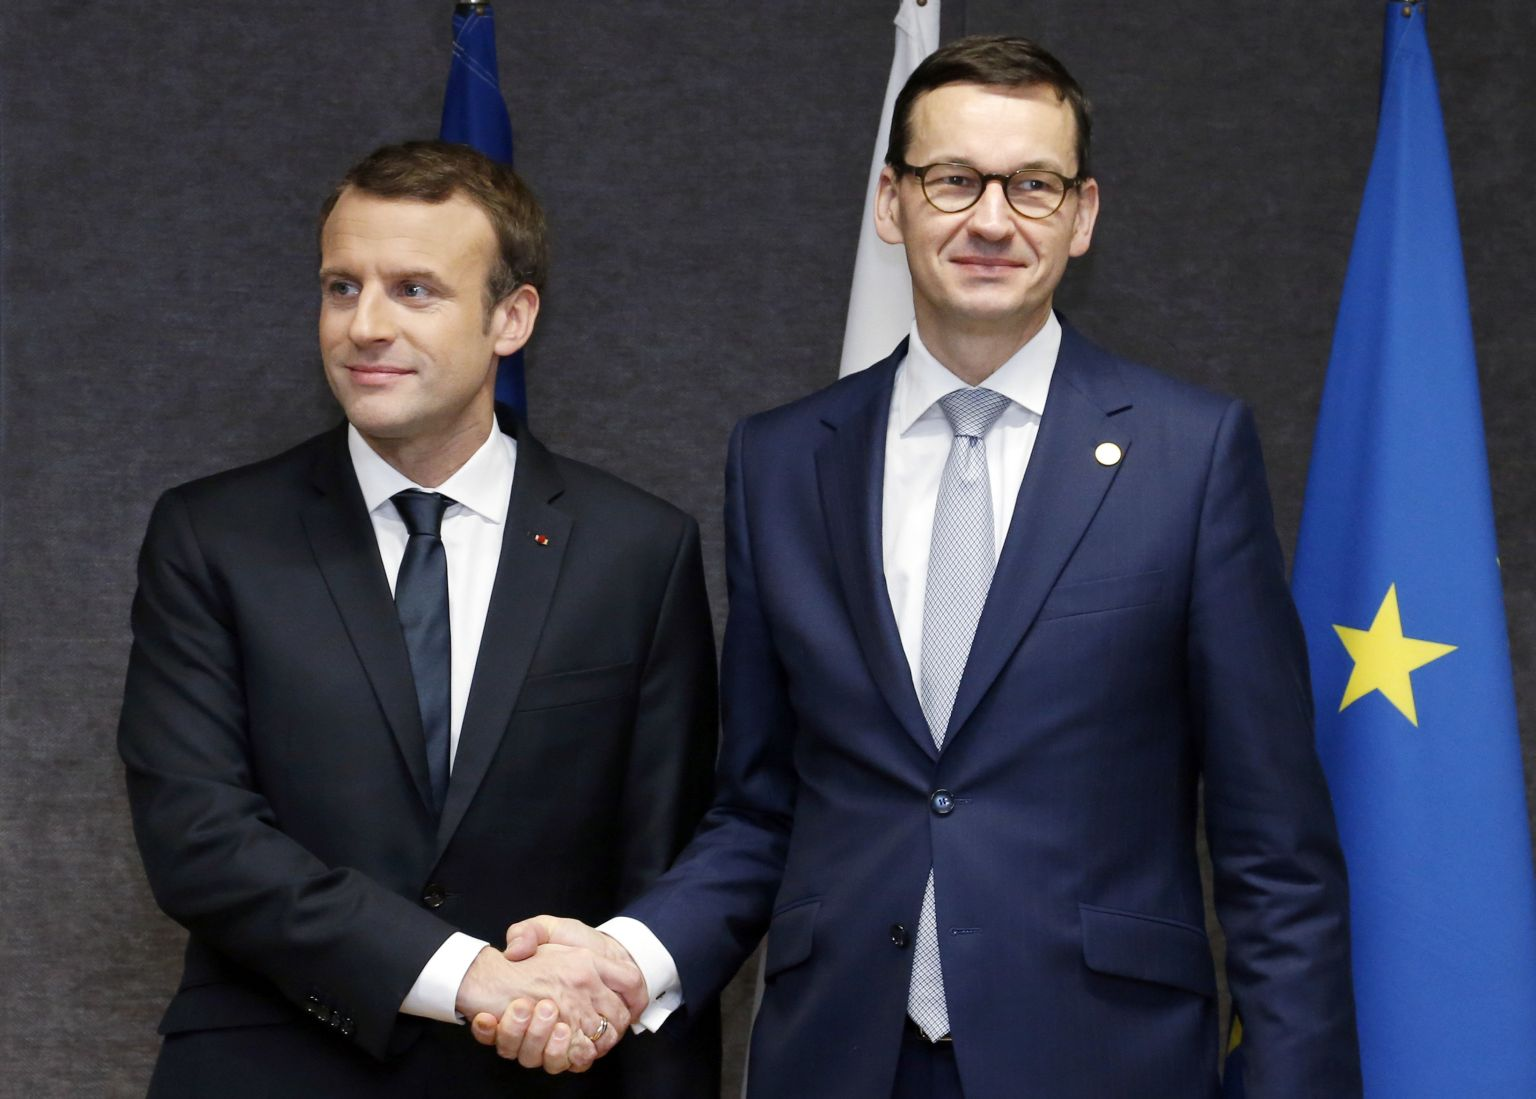 KFrench President Emmanuel Macron, left, shakes hands with Polish Prime Minister Mateusz Morawiecki prior to a meeting on the sidelines of an EU summit in Brussels on Friday, Dec. 15, 2017. EU leaders meet Friday to launch Brexit talks into a new phase and to discuss the euro and banking union. (Francois Lenoir, Pool Photo via AP)